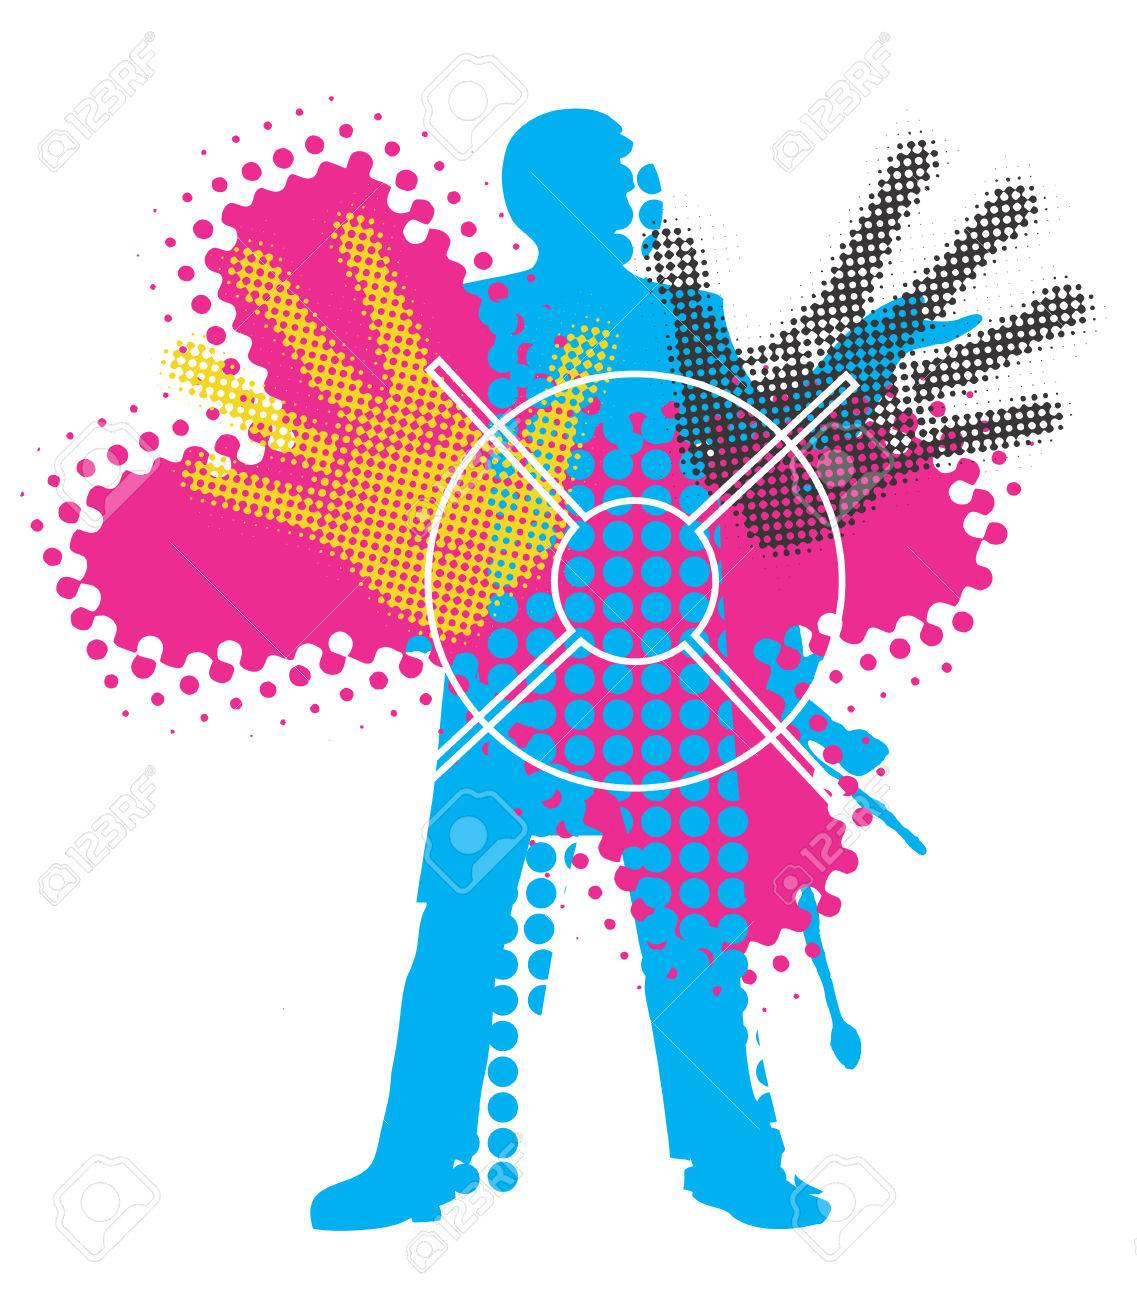 grunge background with male silhouette with print colors concept